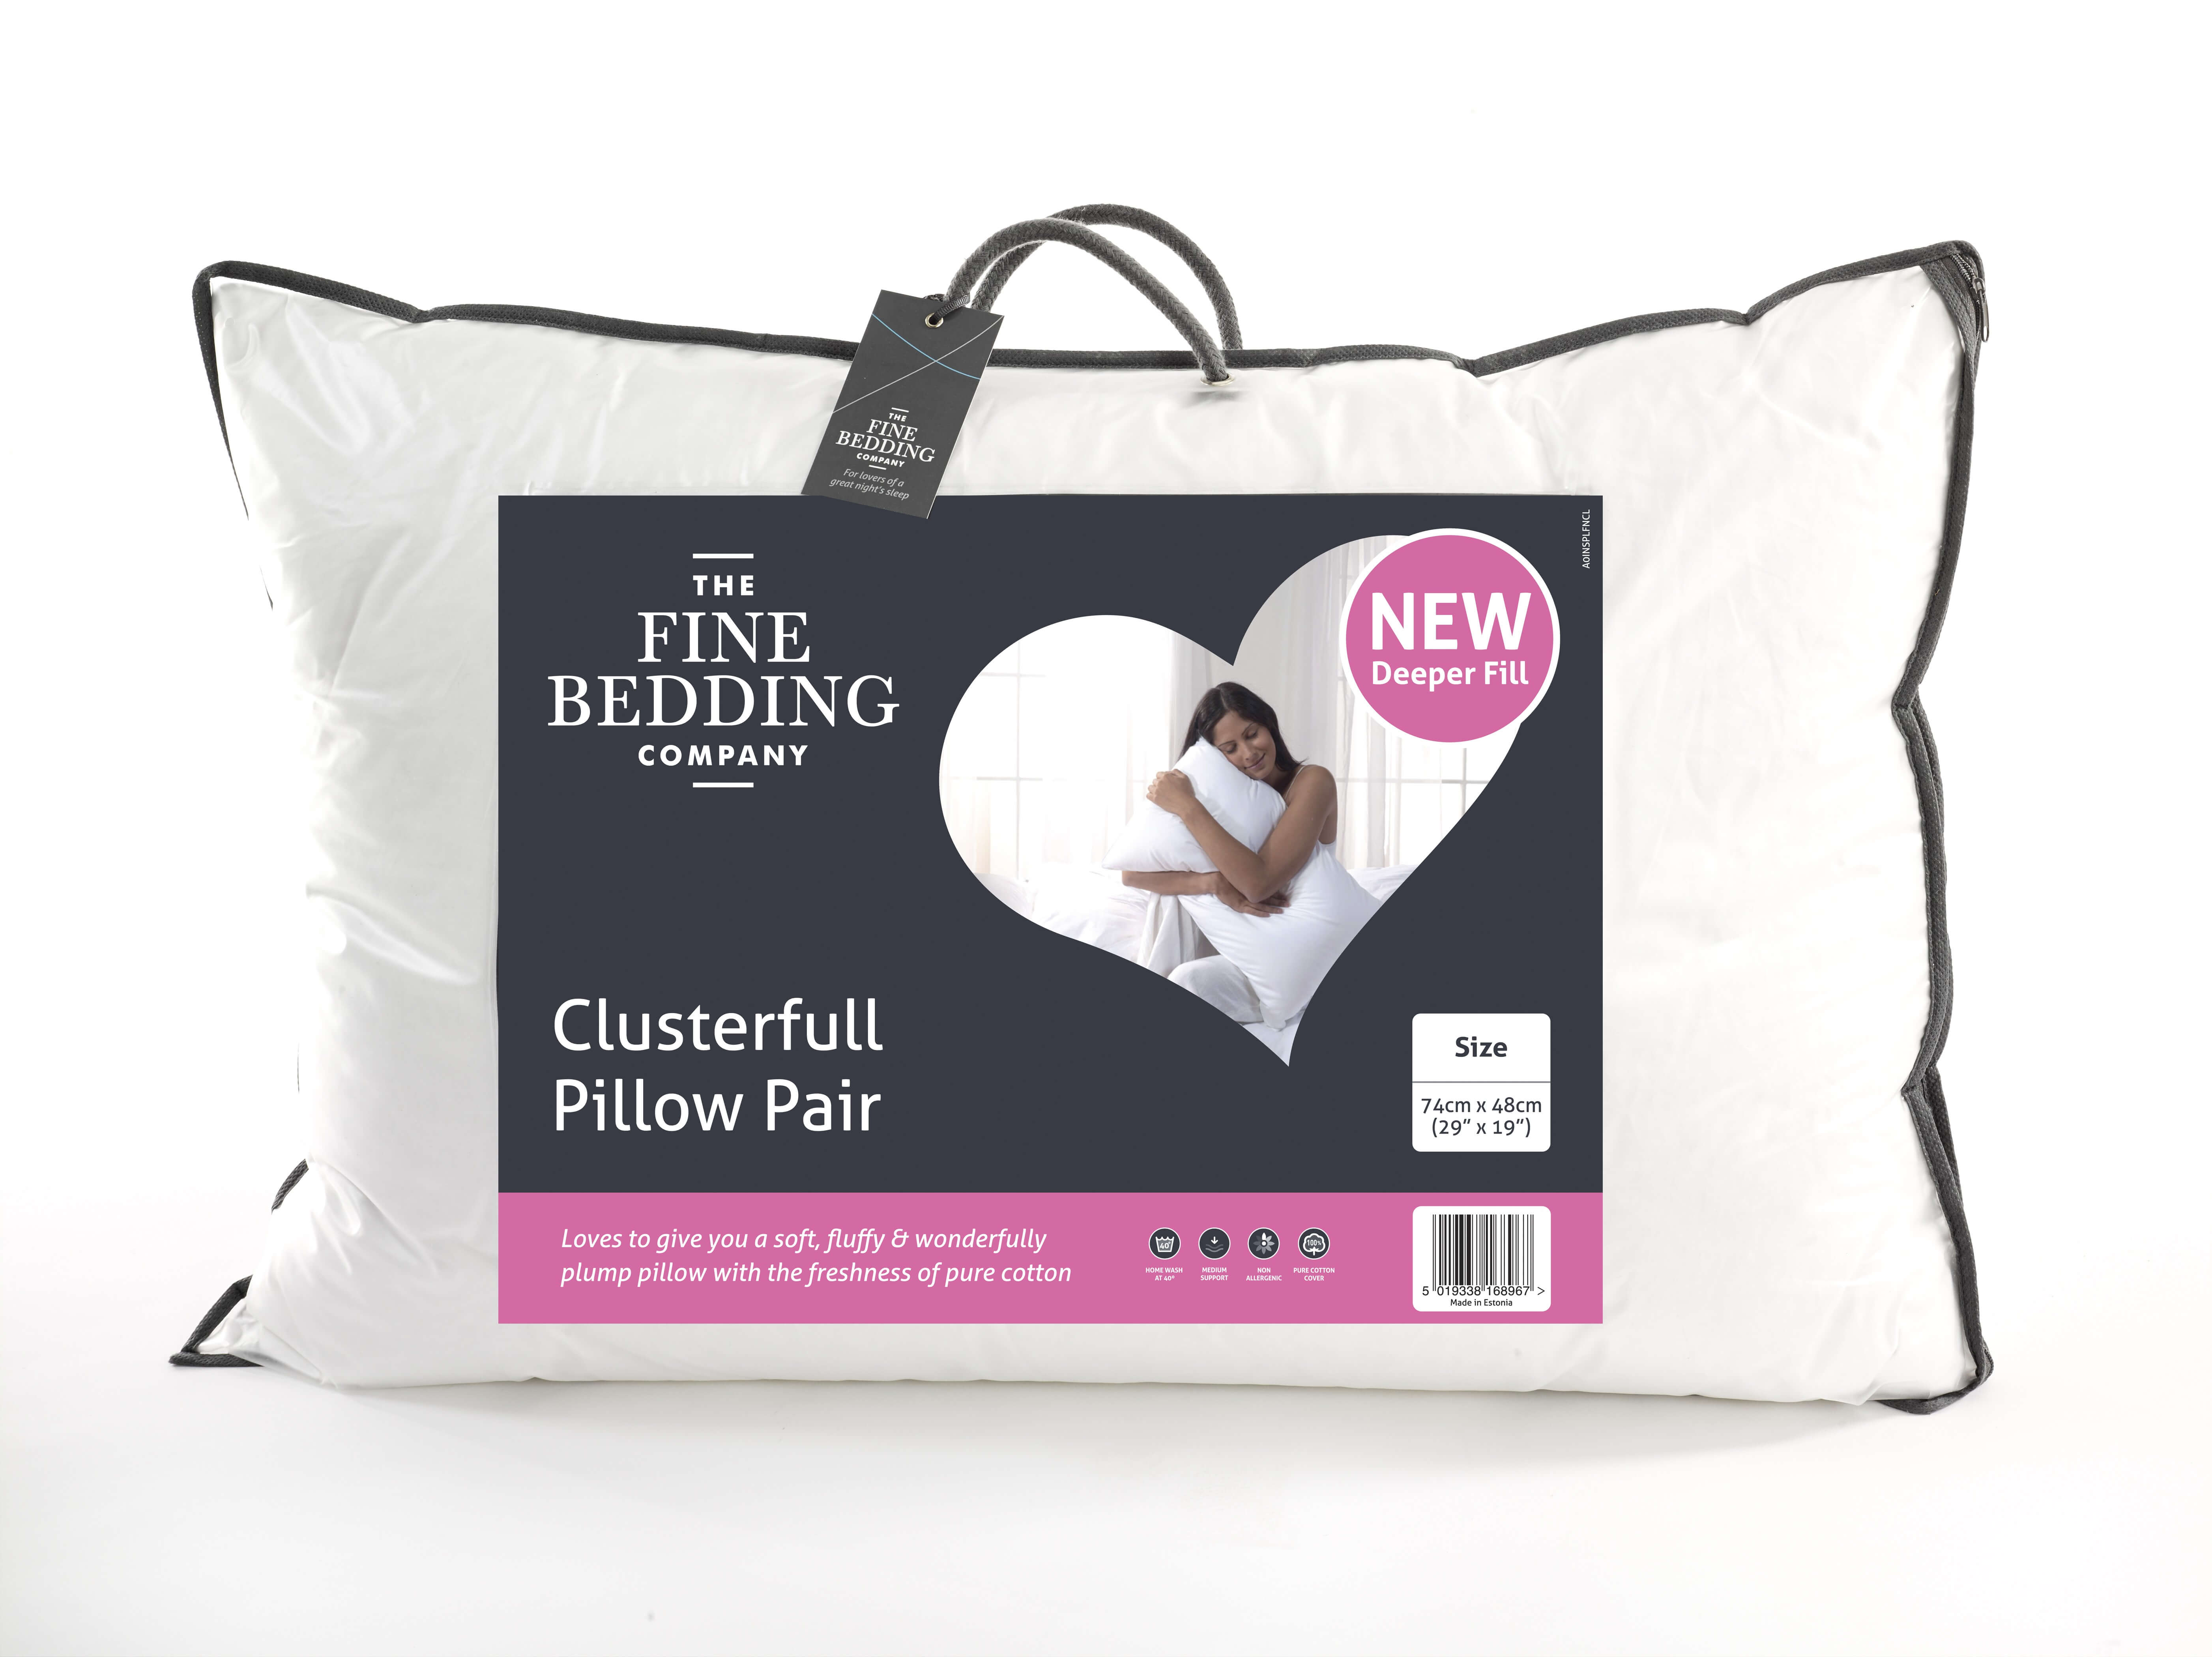 Clusterfull Pillow Pair - The Fine Bedding Company